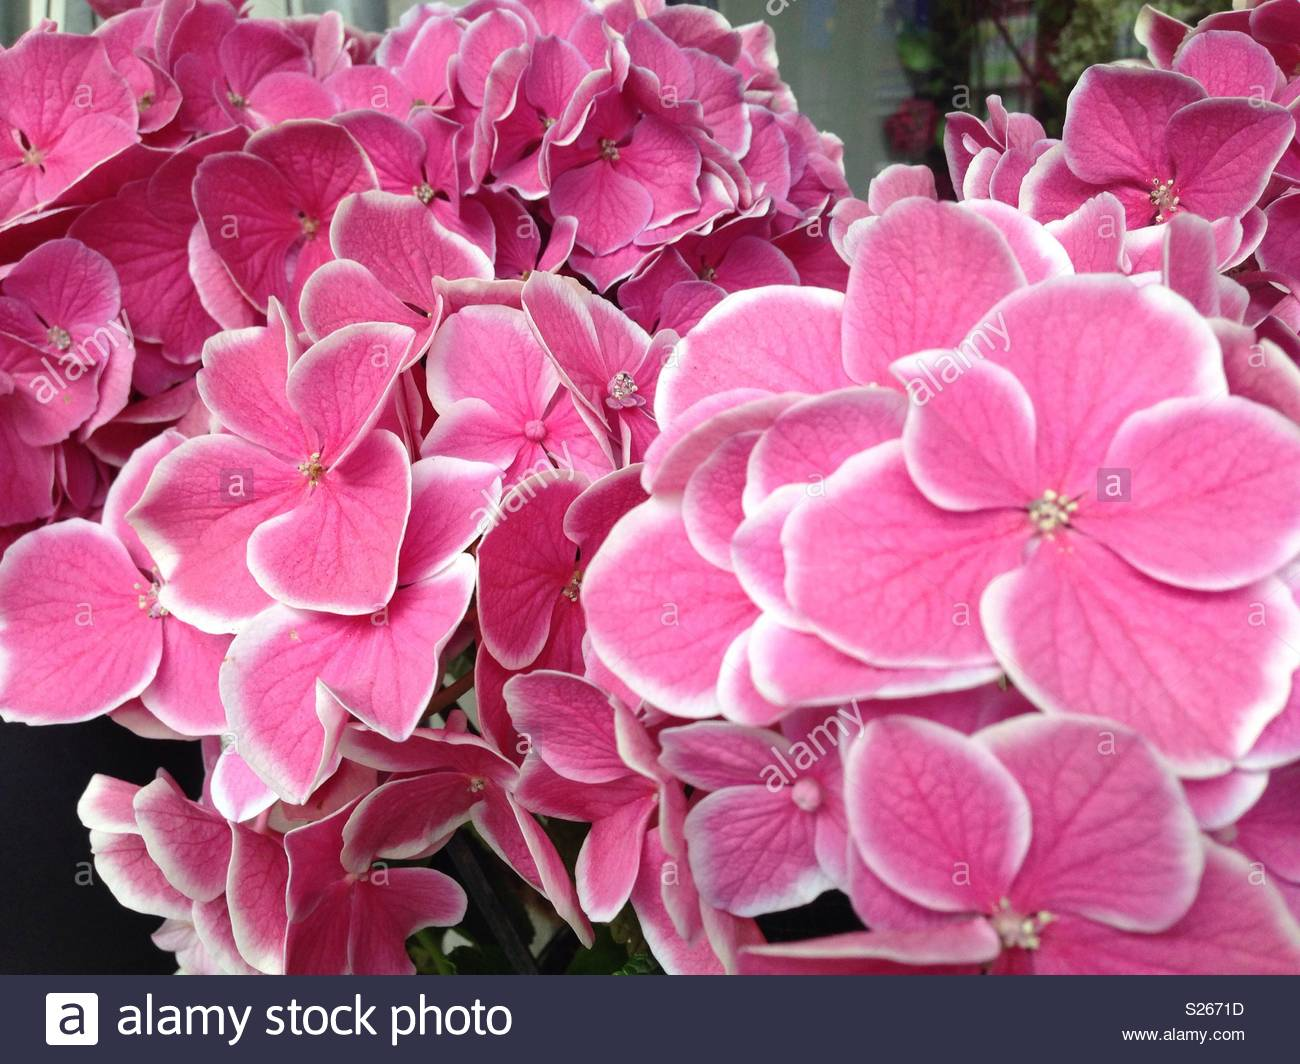 Beautiful Pretty Bunch Of Delicate Pink Flowers With A White Edge